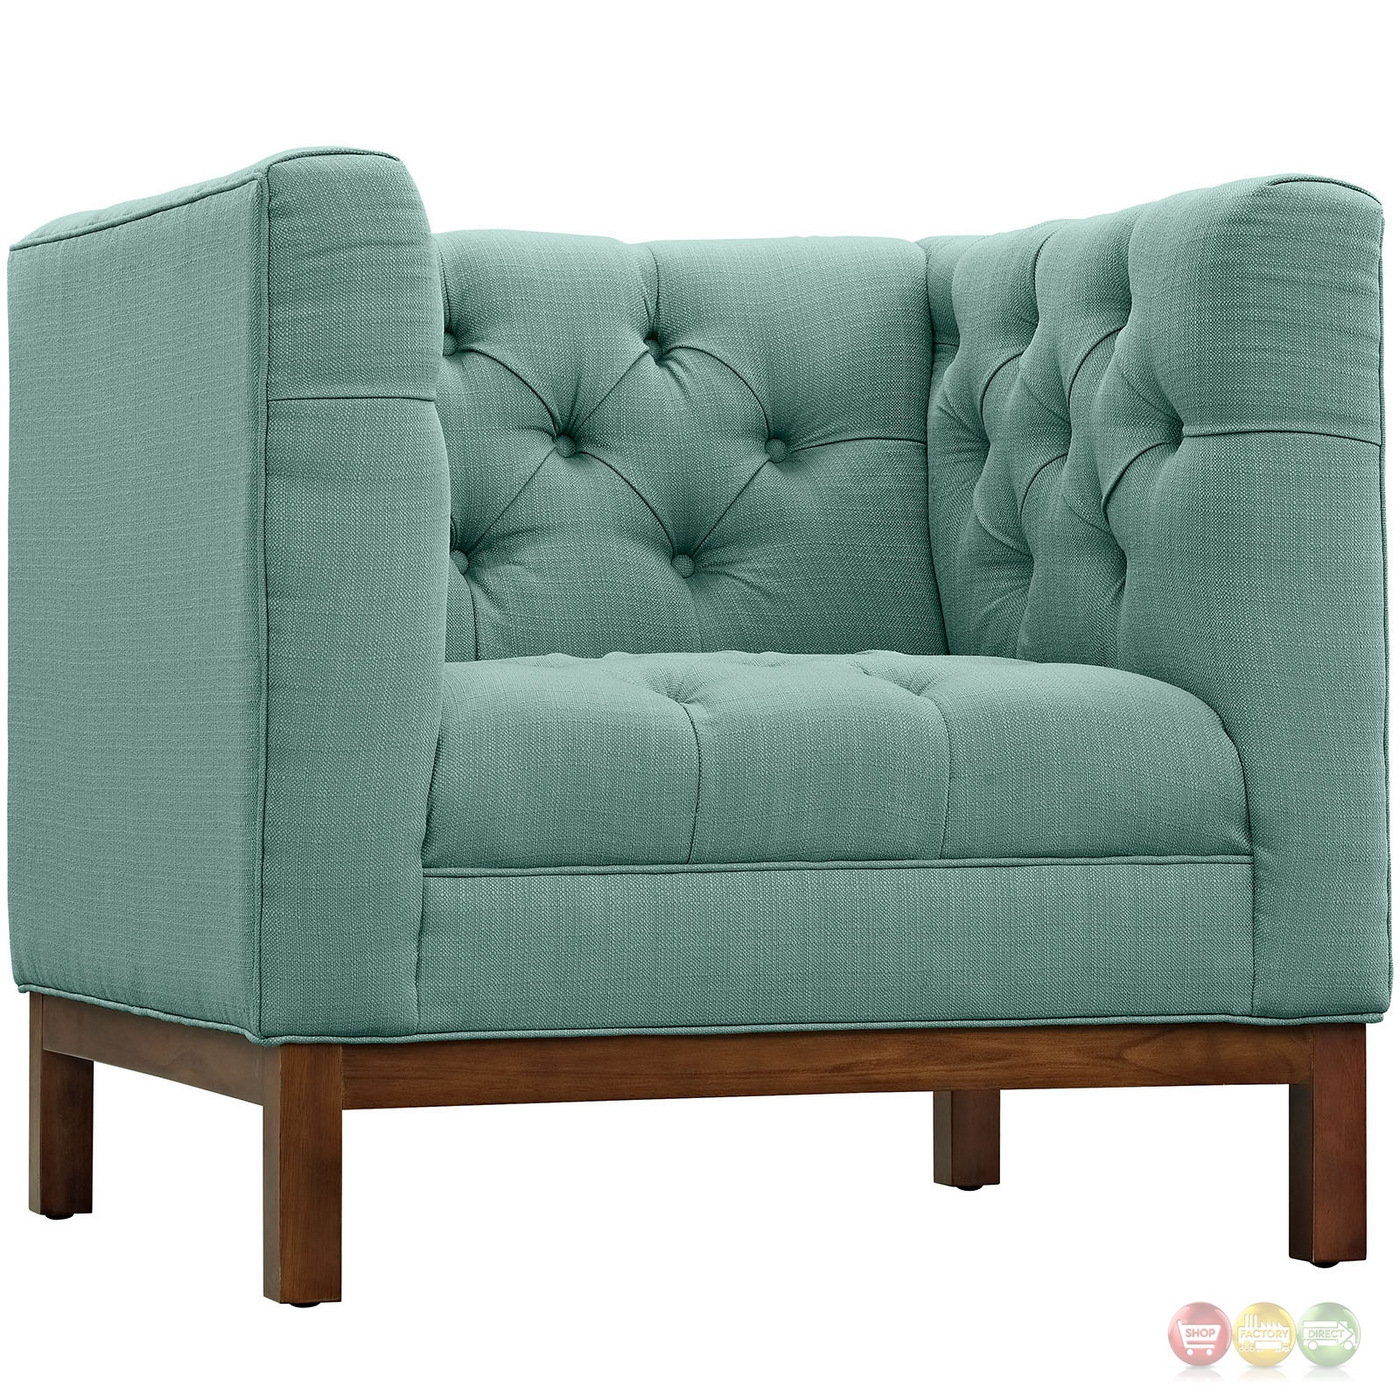 panache sofa set montana faux leather bed with storage mid century modern 3pc upholstered